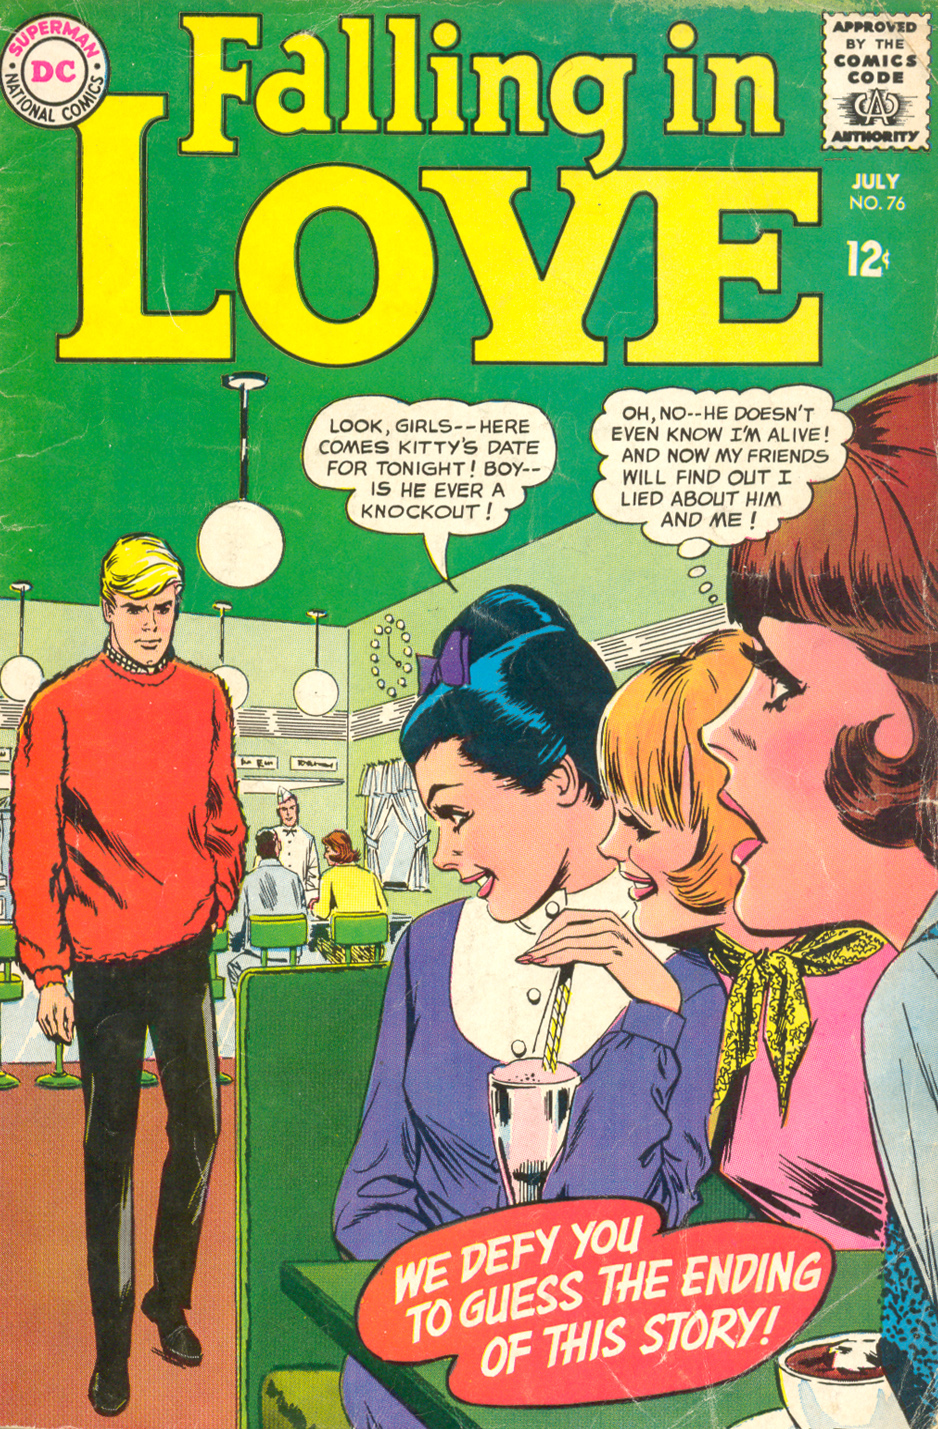 Falling in Love  #76 (July 1965) Pencils: Tony Abruzzo